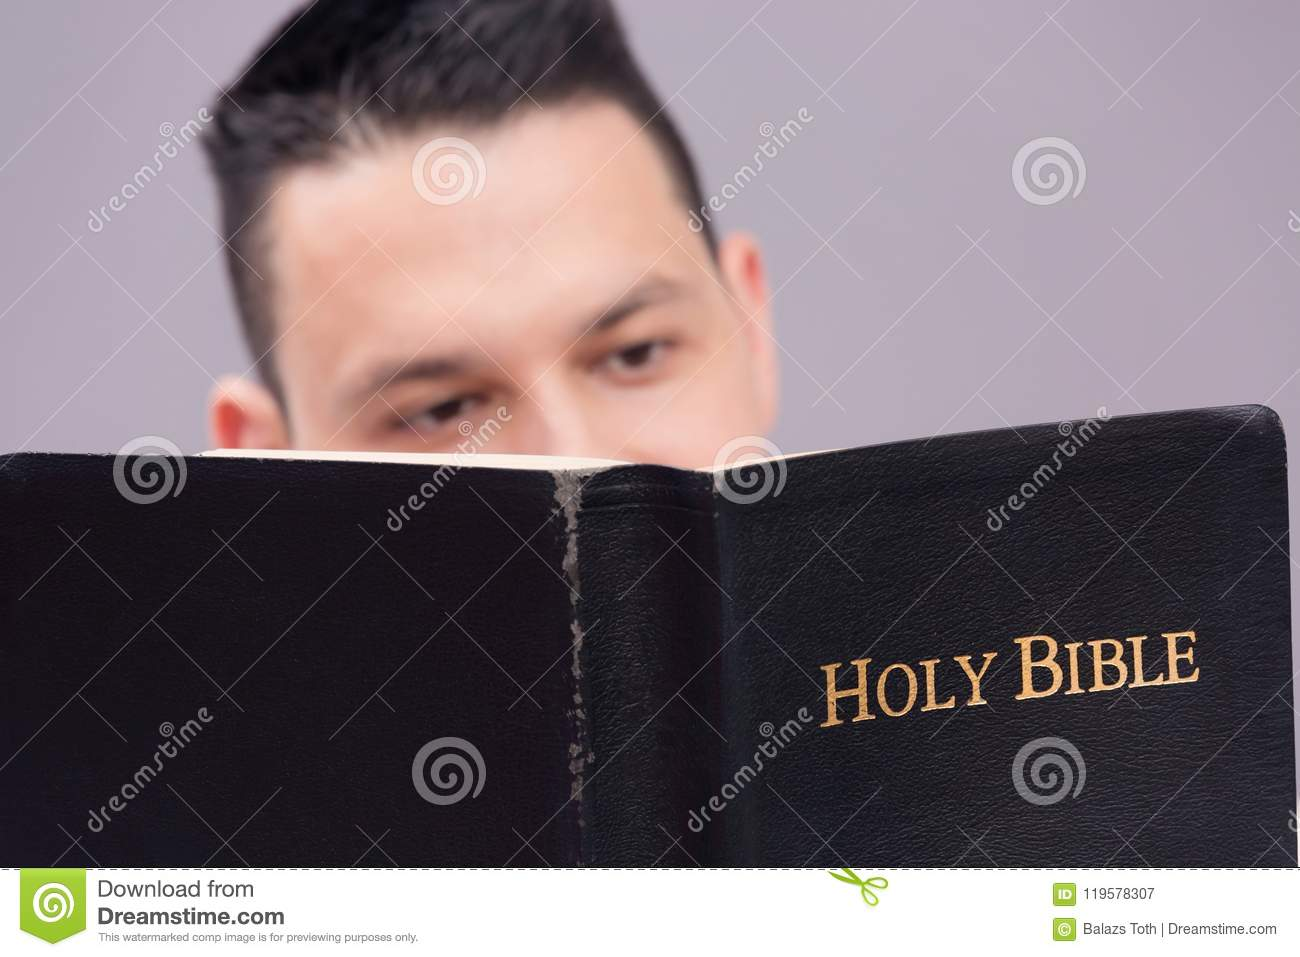 Homme affichant la bible sainte